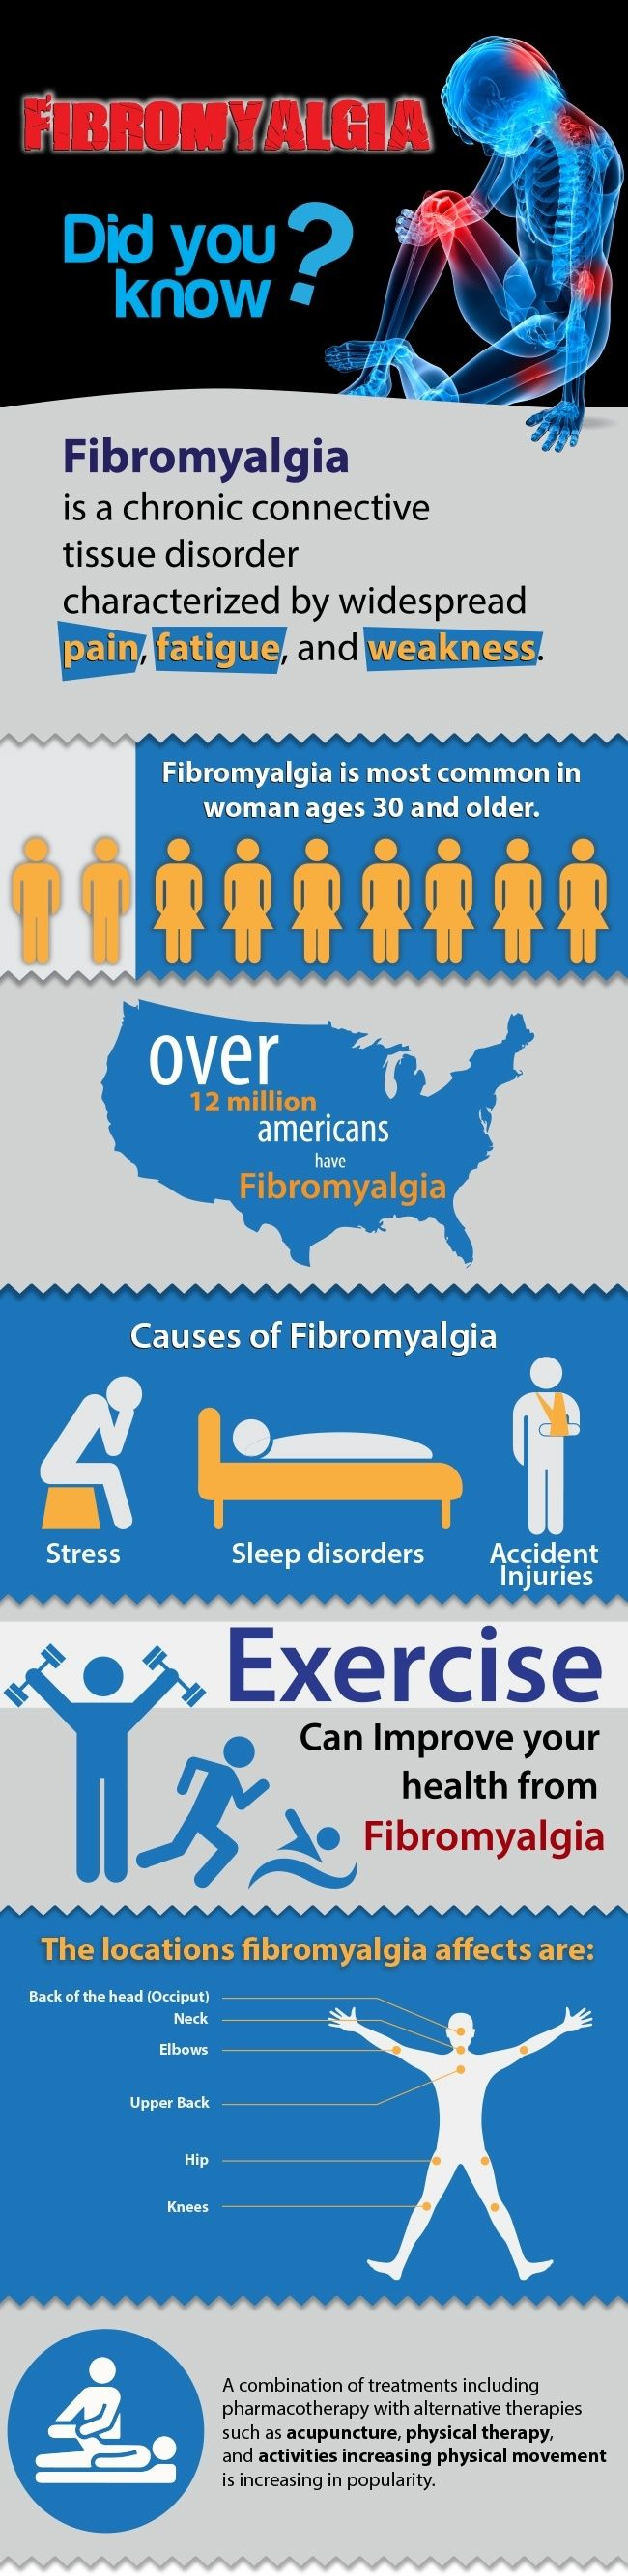 Fibromyalgia Symptoms Vary, But These Are Some Common Ones